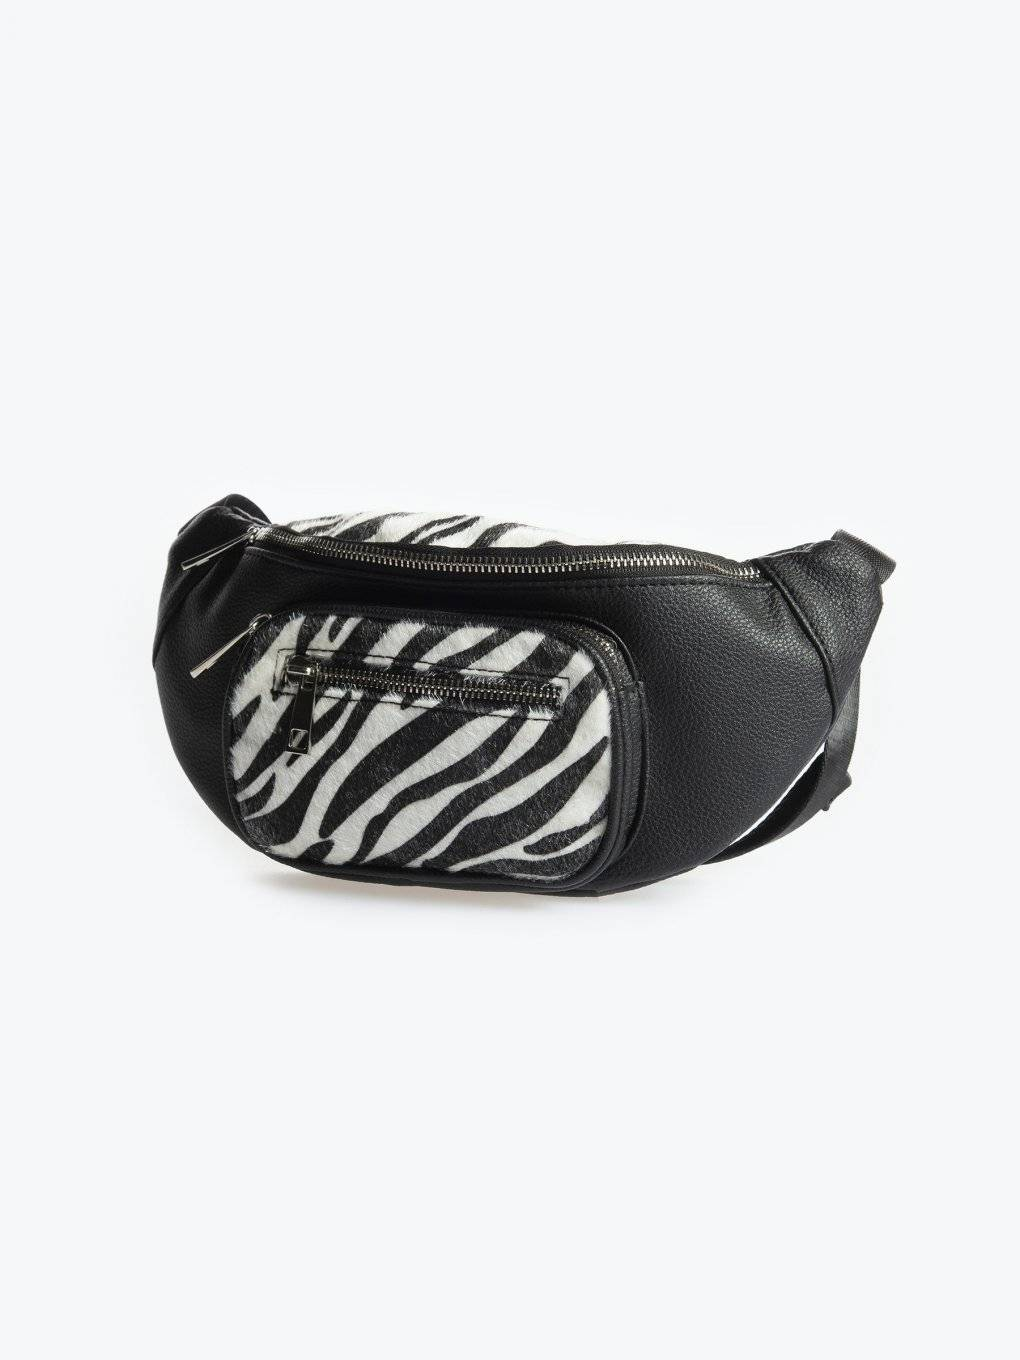 Bum bag with animal print details